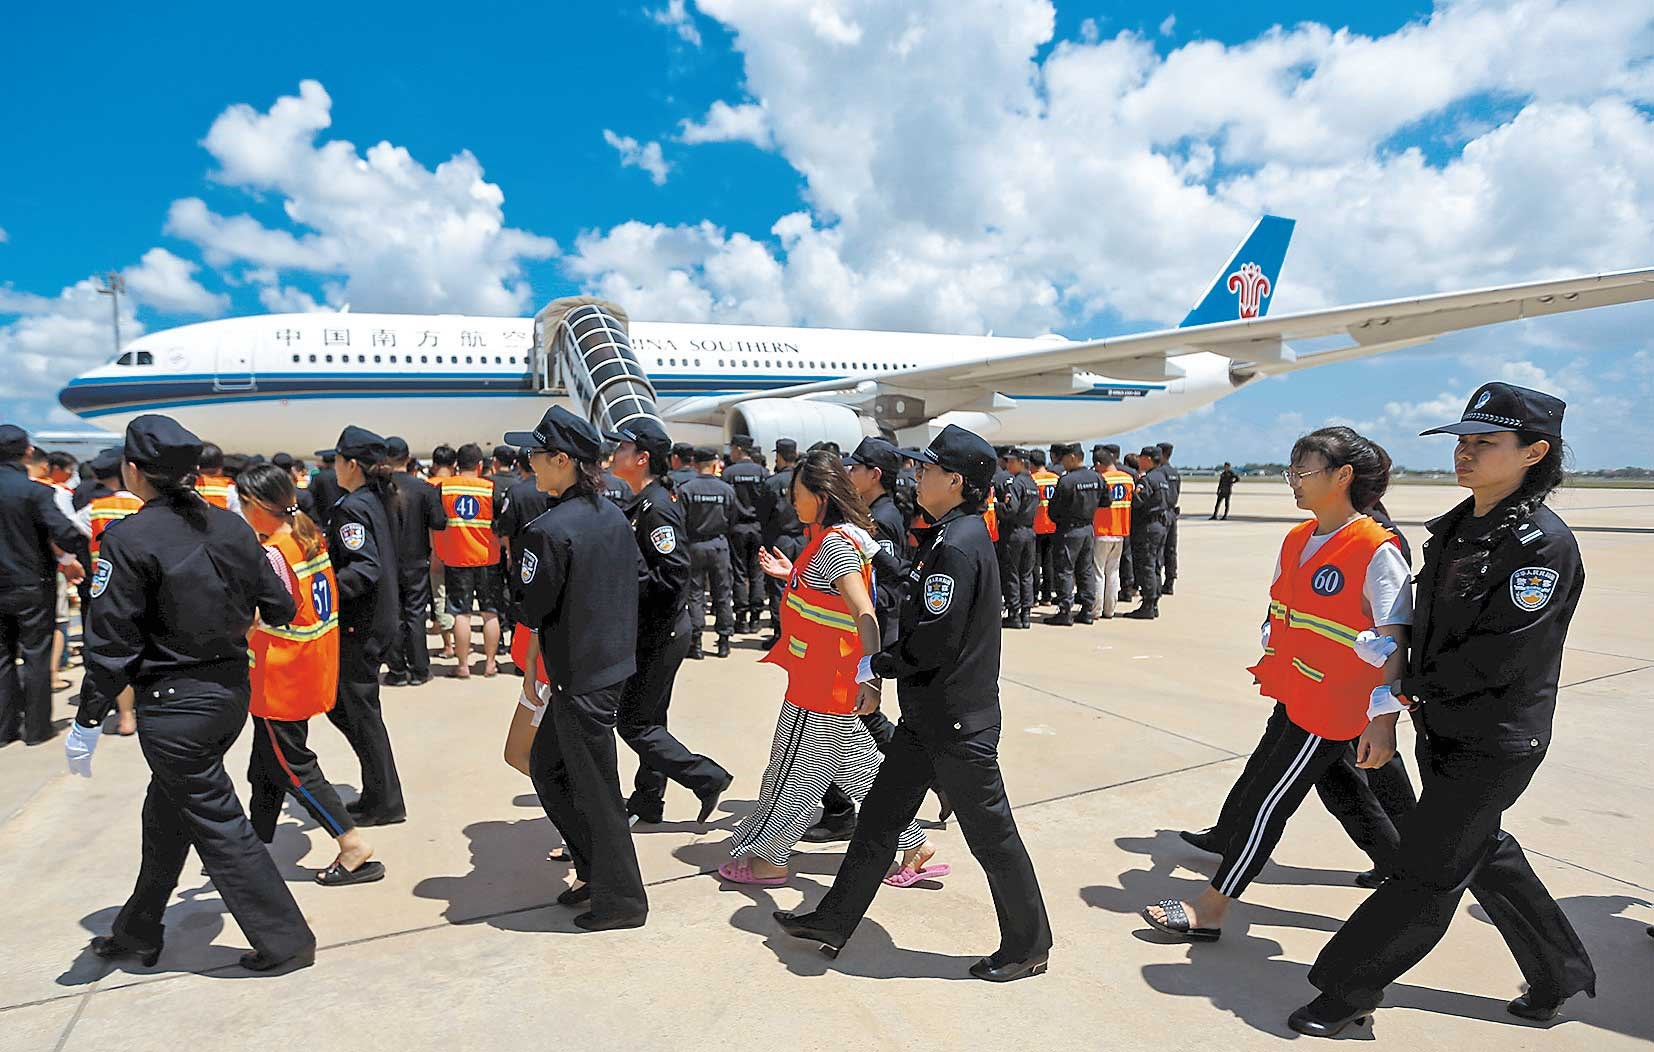 Chinese nationals (in orange vests), who were arrested over a suspected Internet scam, are escorted by Chinese police officers before they were deported at Phnom Penh International Airport, in the Cambodian capital, yesterday. A total of 74 Chinese nationals arrested for telecom fraud were sent back to China from Cambodia yesterday. The suspects were accused of being involved in more than 60 major transnational telecom frauds involving over 7 million yuan (US$1.1 million). They were captured in Phnom Penh, Pailin and Sihanoukville. A large collection of bank cards, computers and mobile phones were also seized during the raids. — Reuters